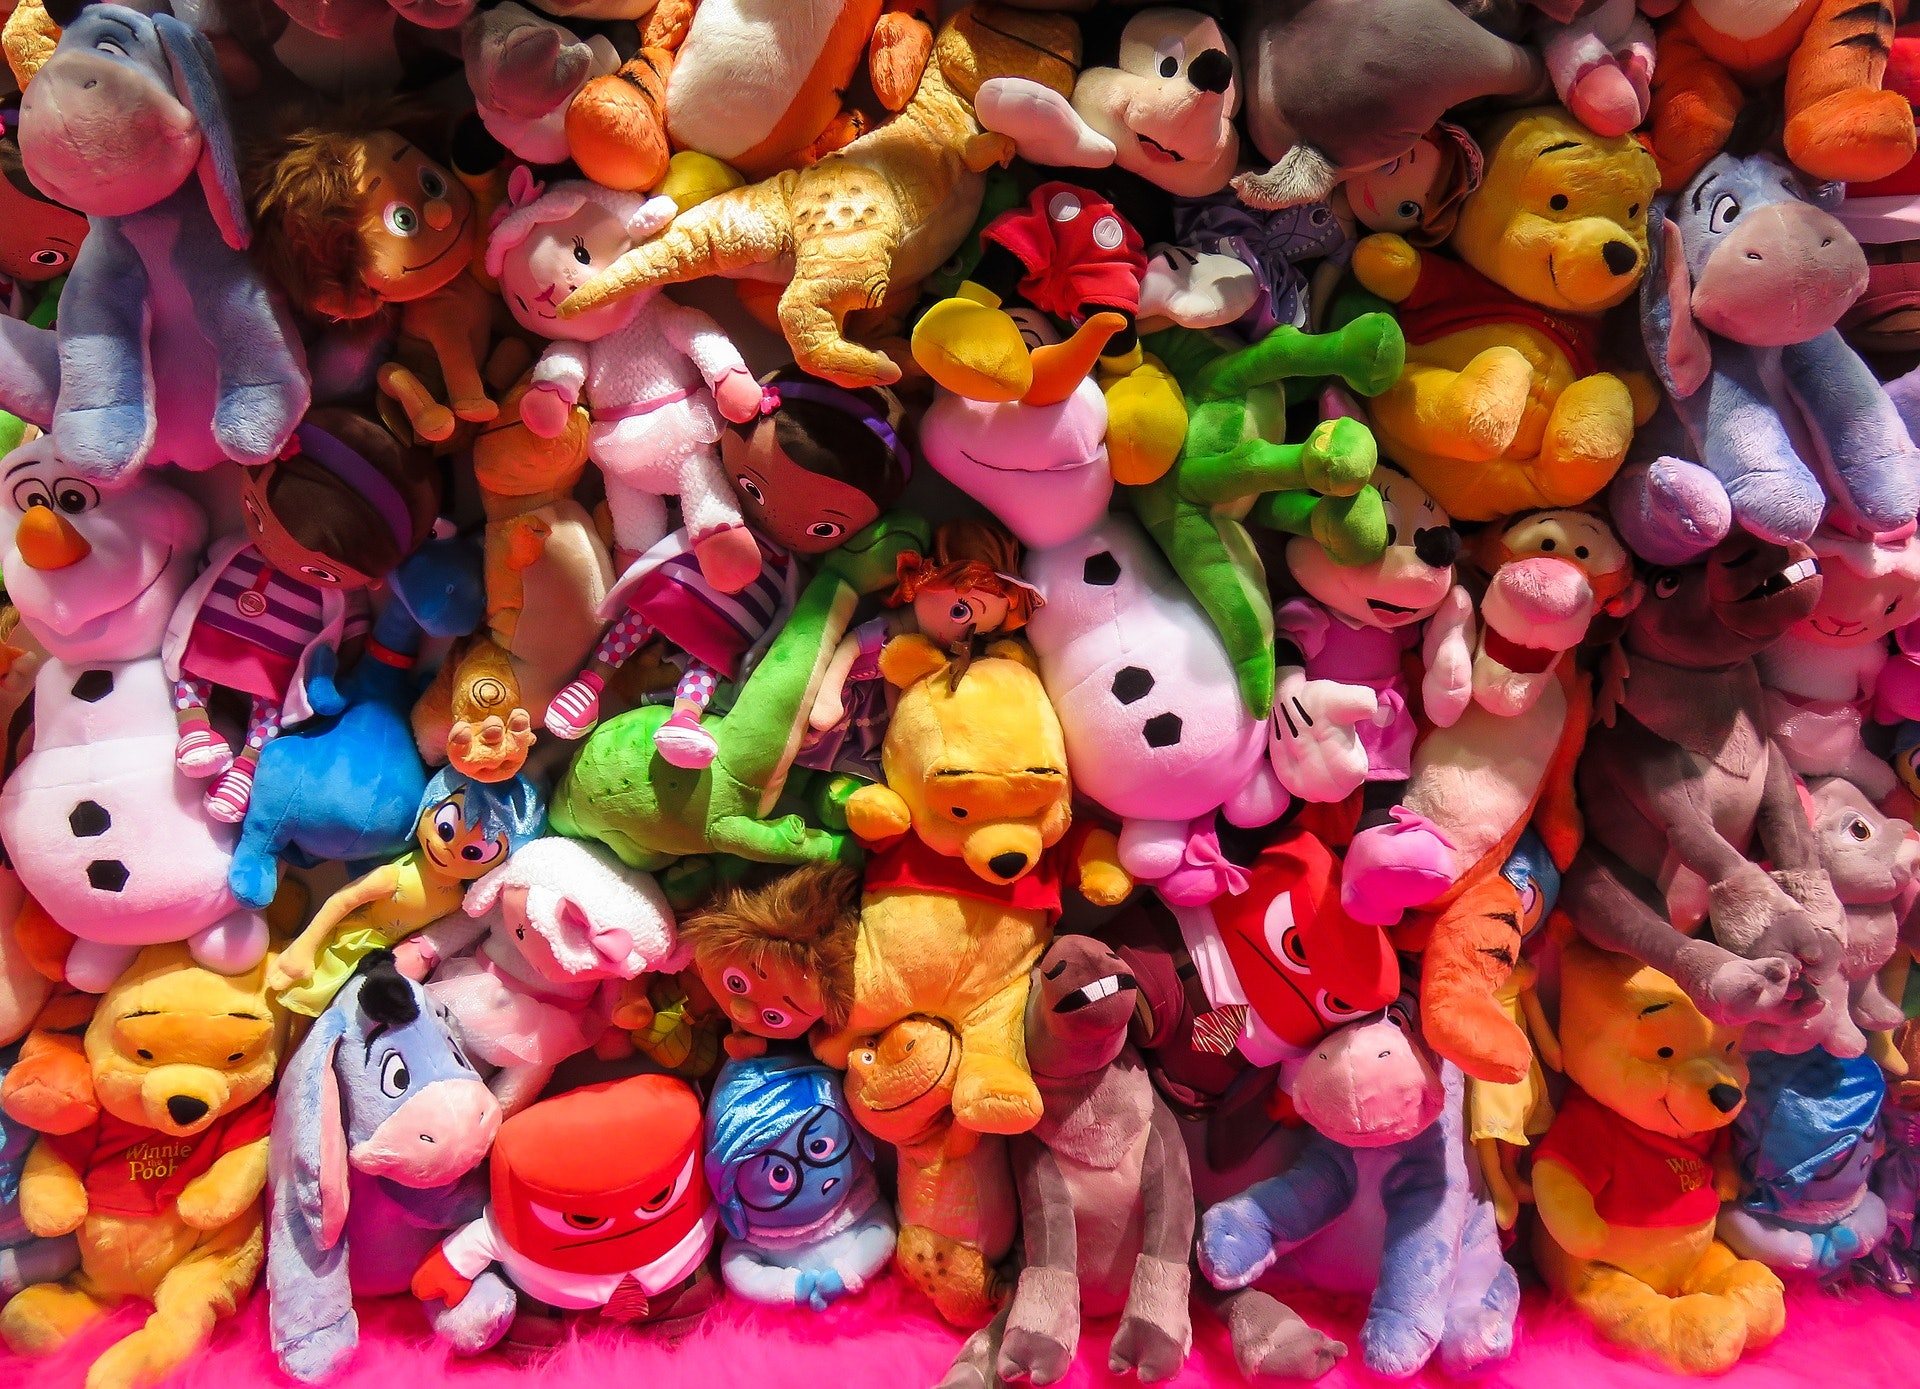 1663417f0a3 Are Beanie Babies Still Being Made  The  90s Plush Toys Have Taken  Different Forms Over The Years